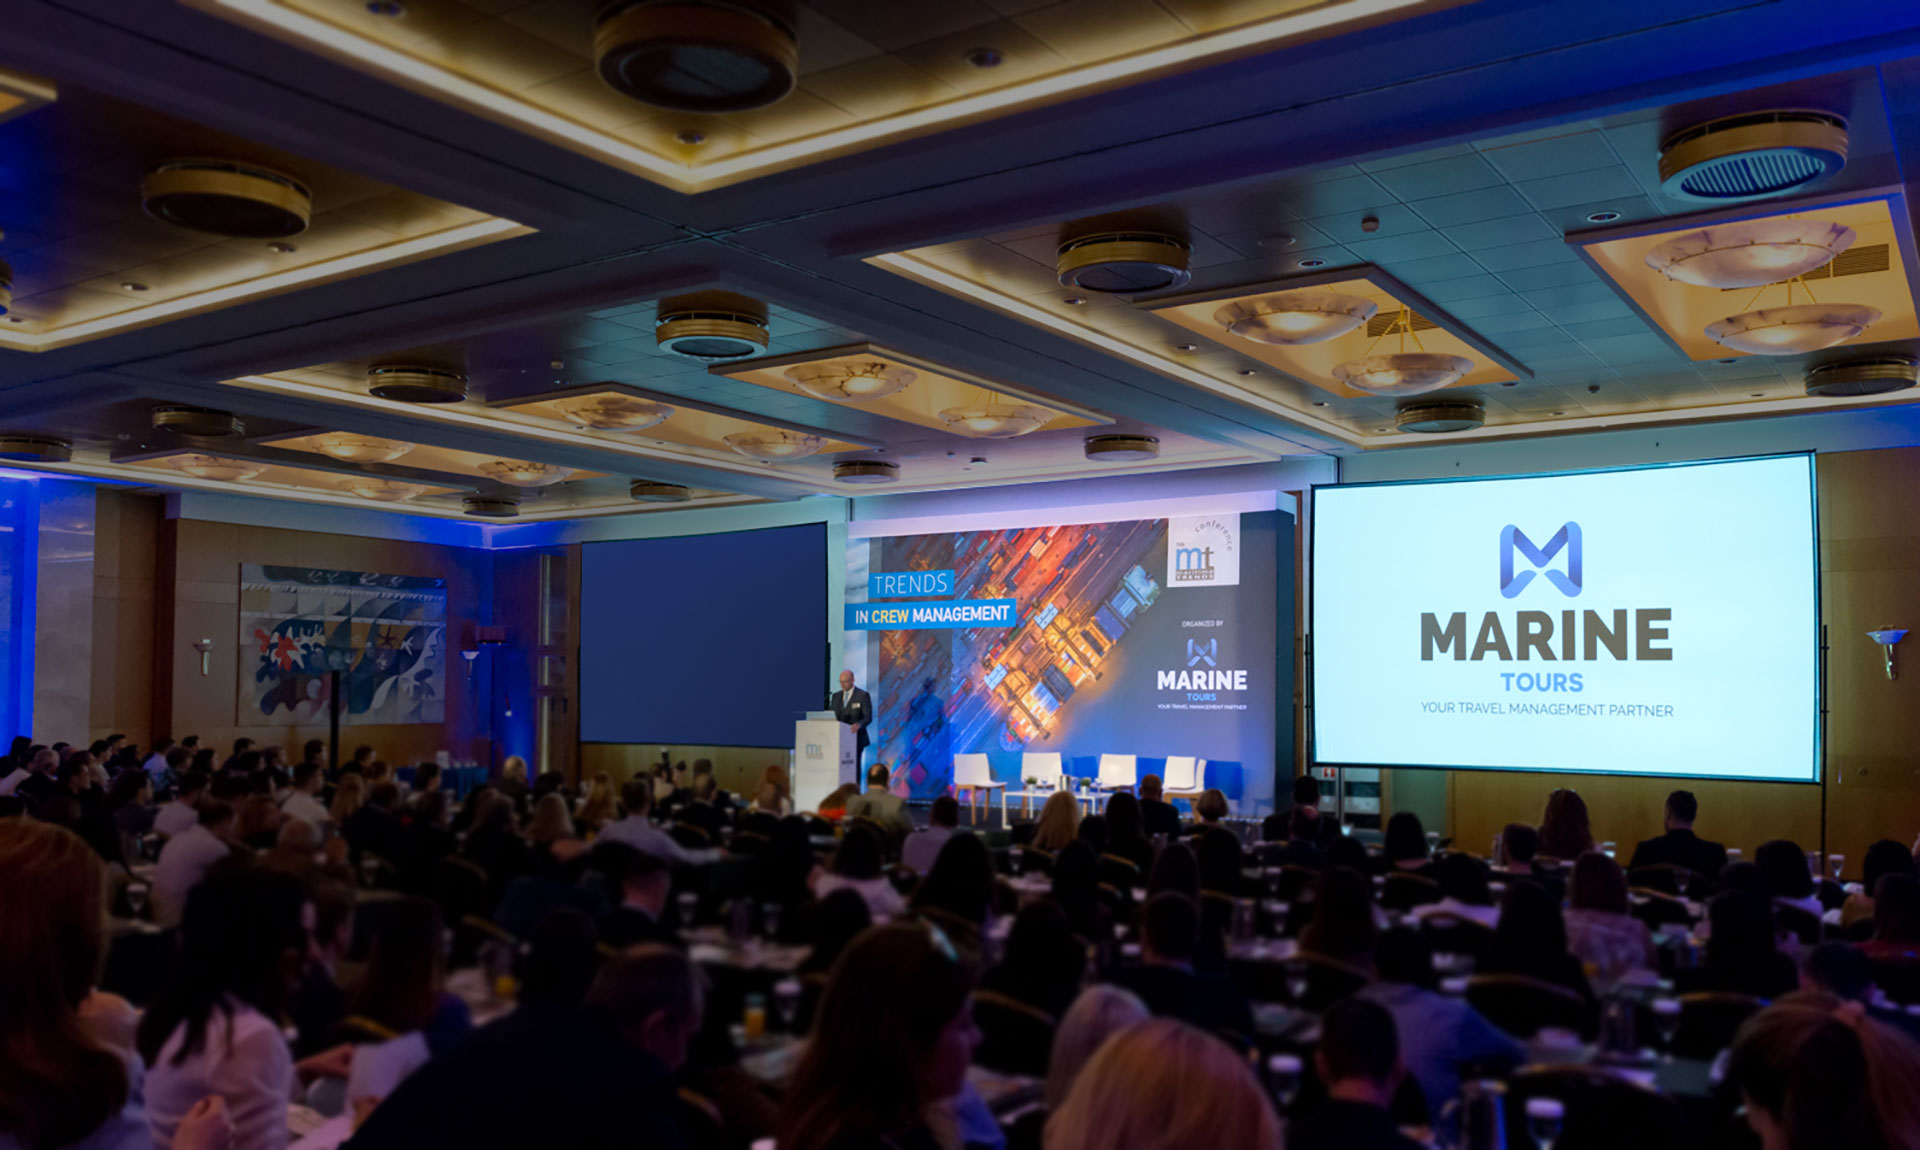 Maritime Trends Conference από τη Marine Tours